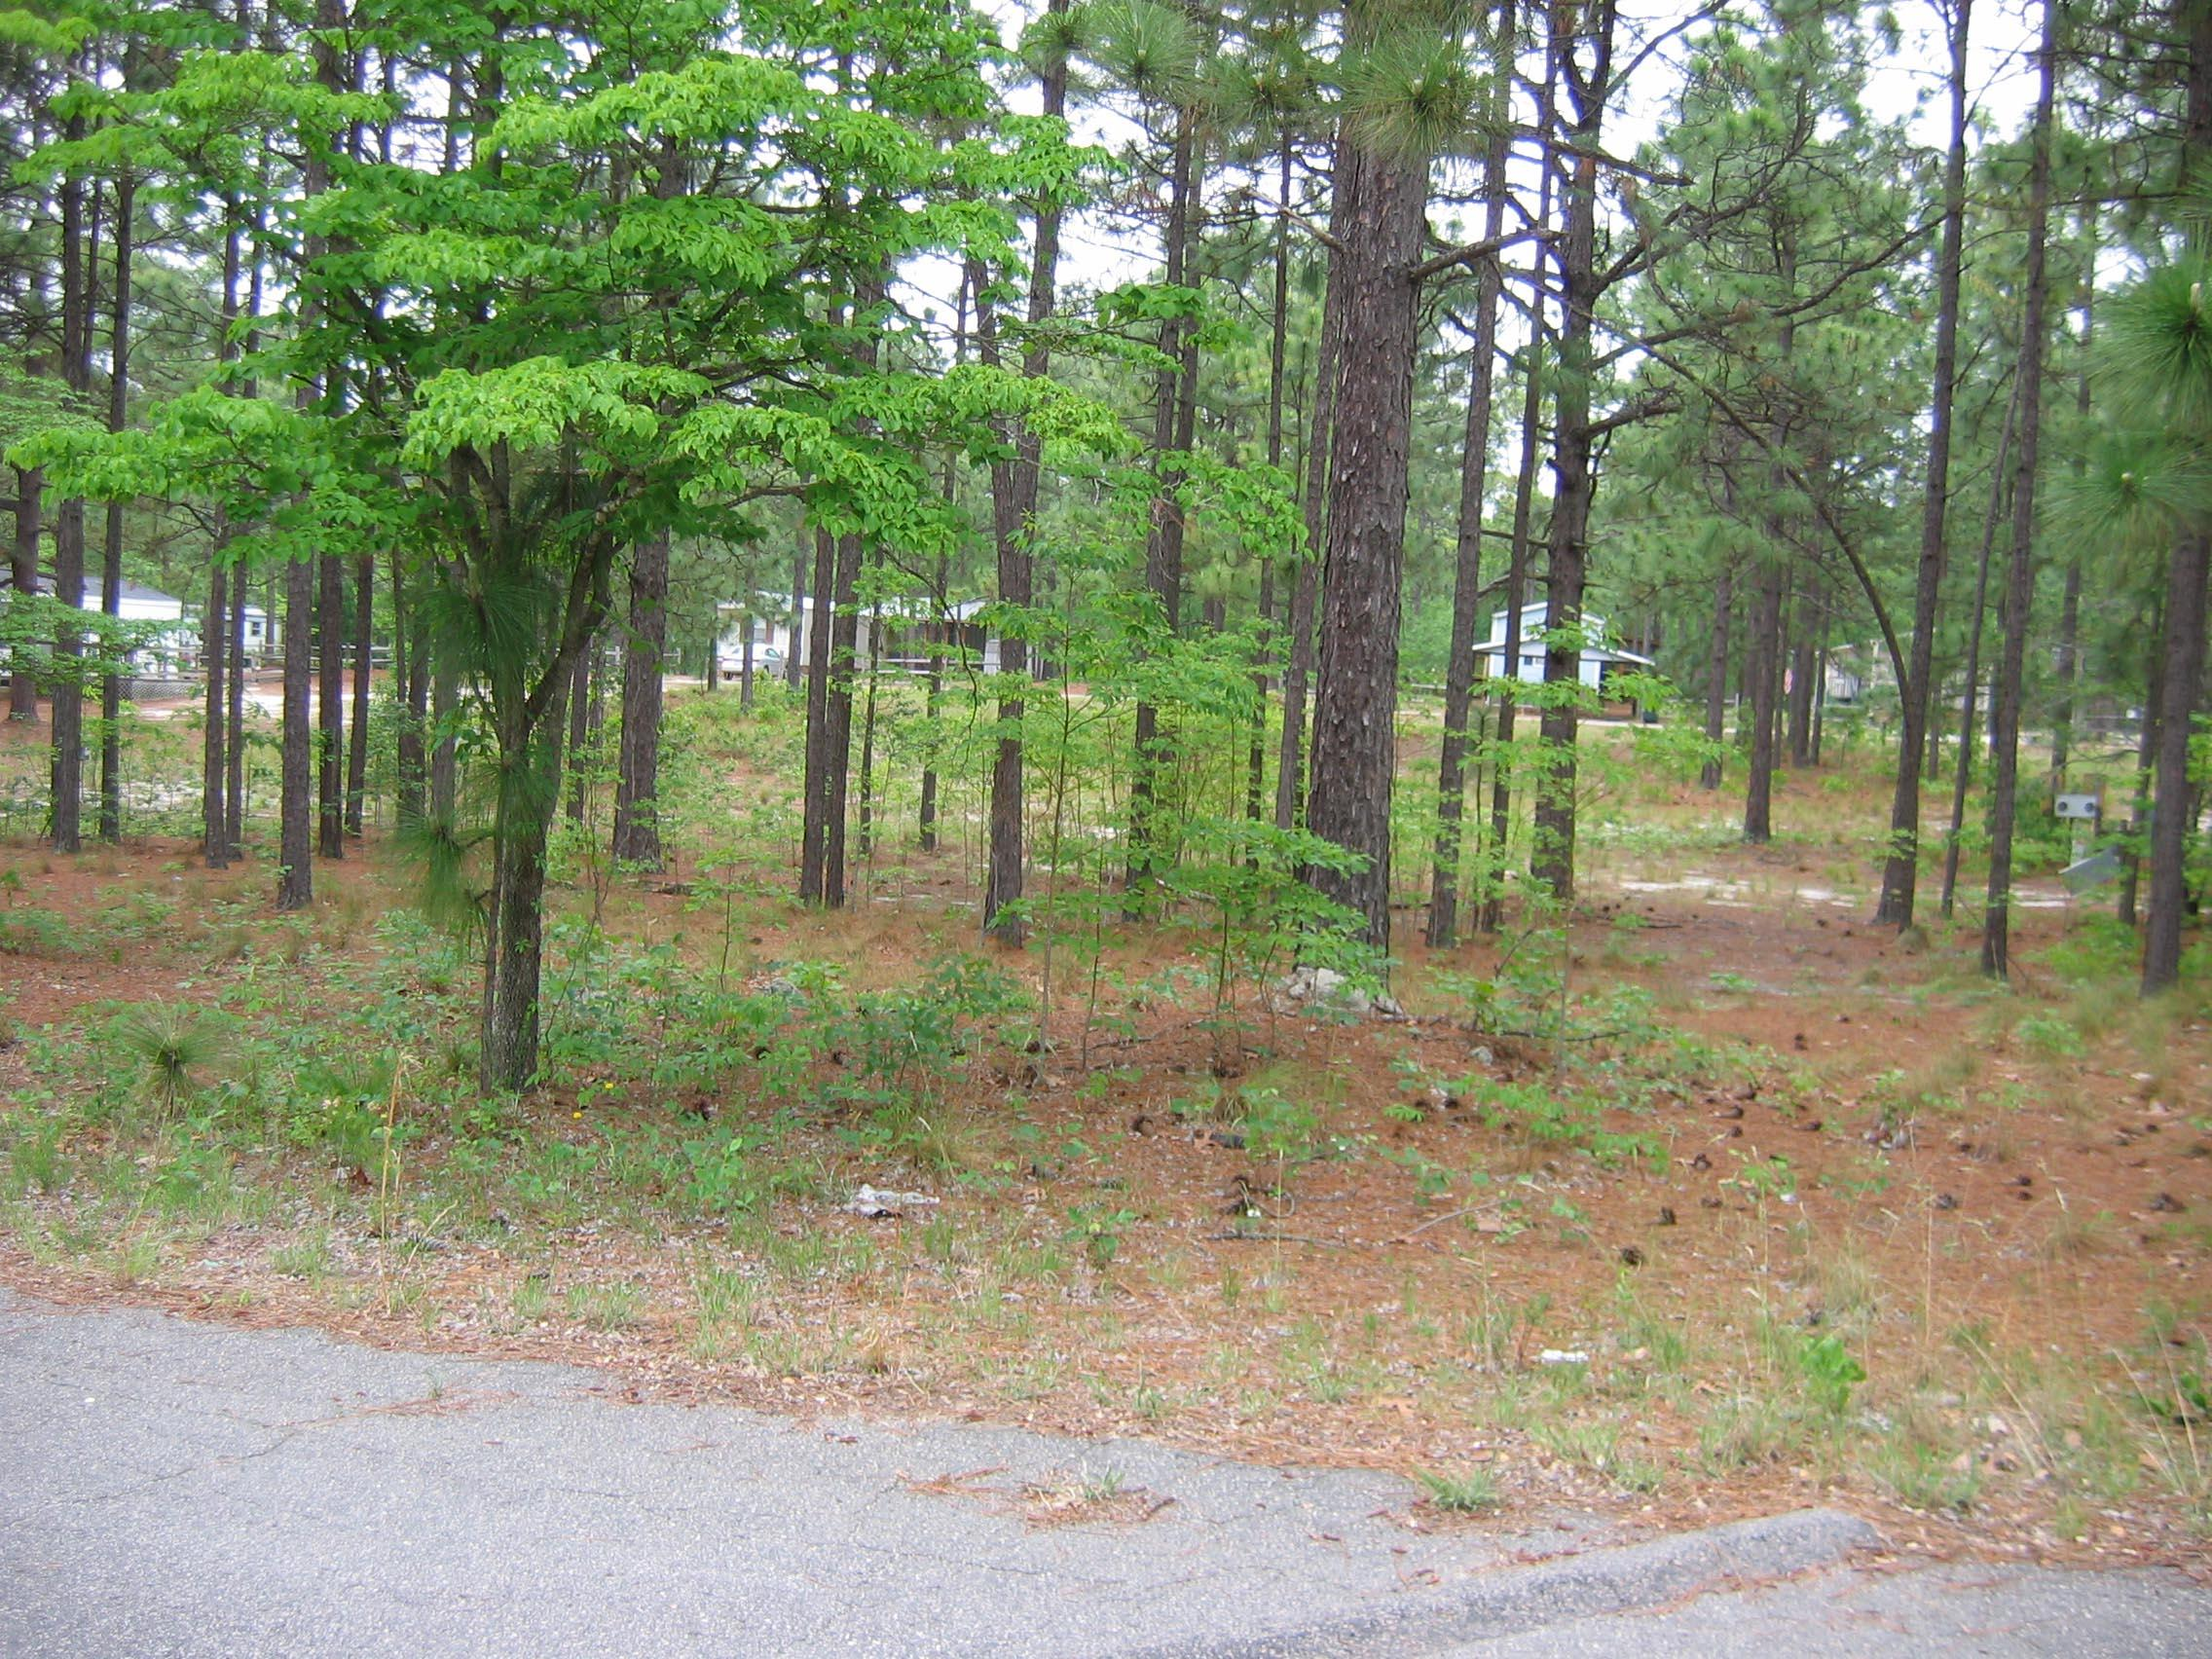 Ridgewood Drive, Southern Pines, North Carolina 0 Bedroom as one of Homes & Land Real Estate